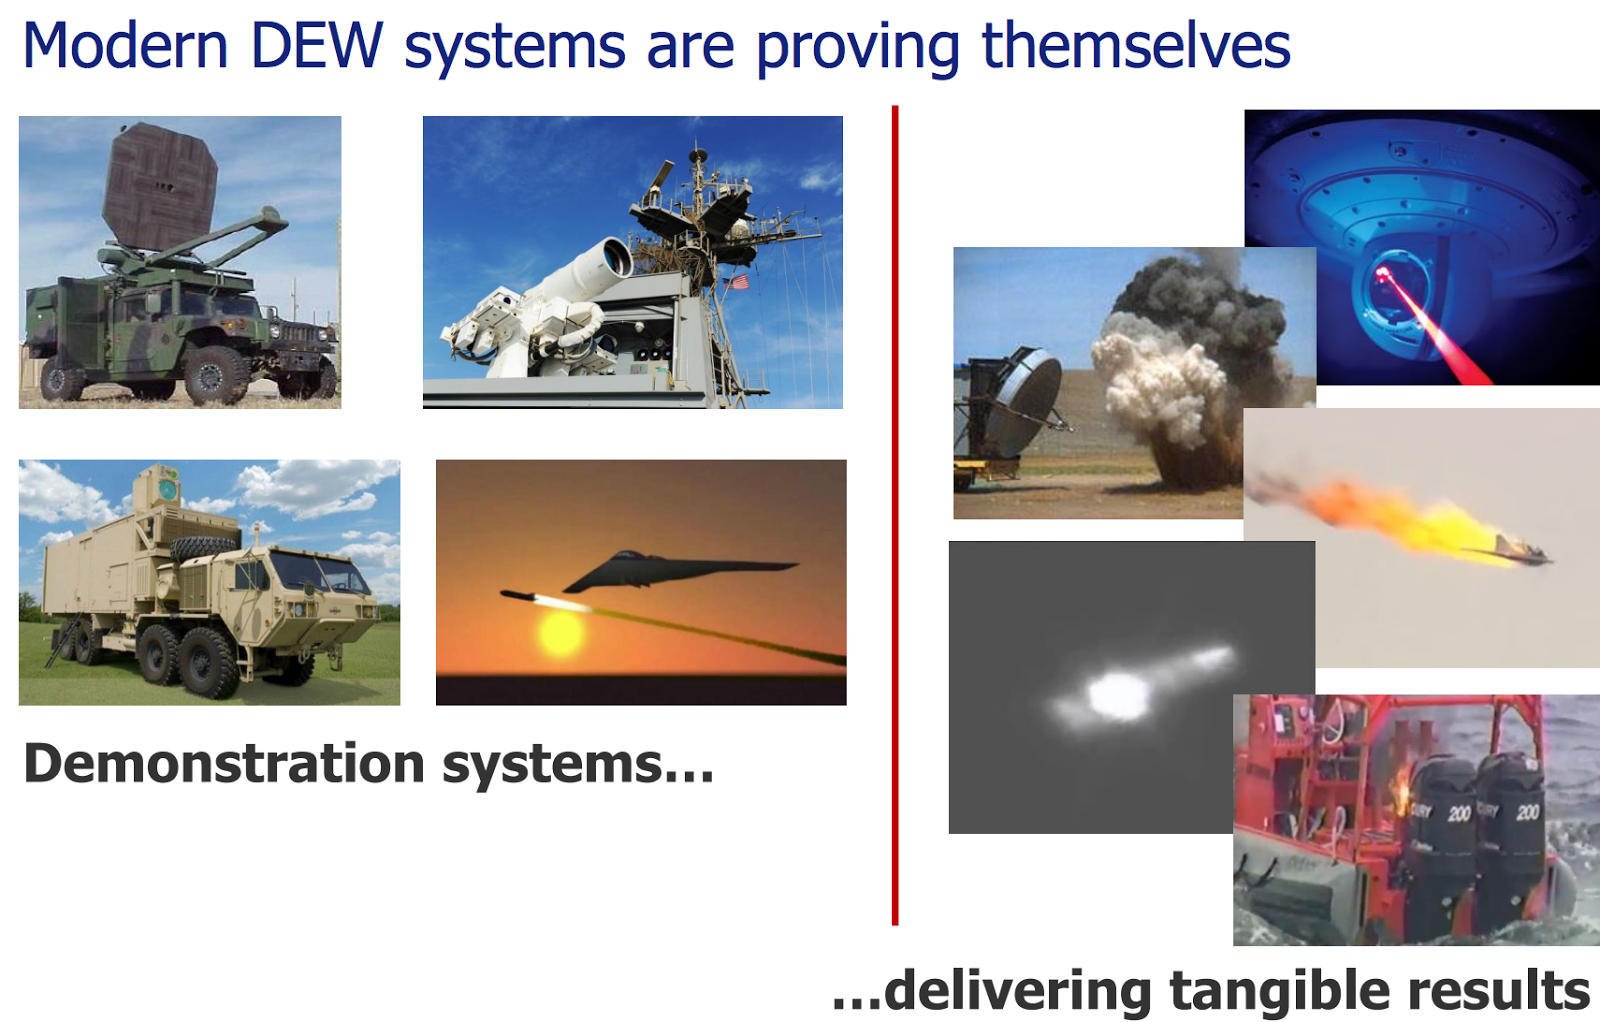 High power microwaves and laser weapons – NextBigFuture com